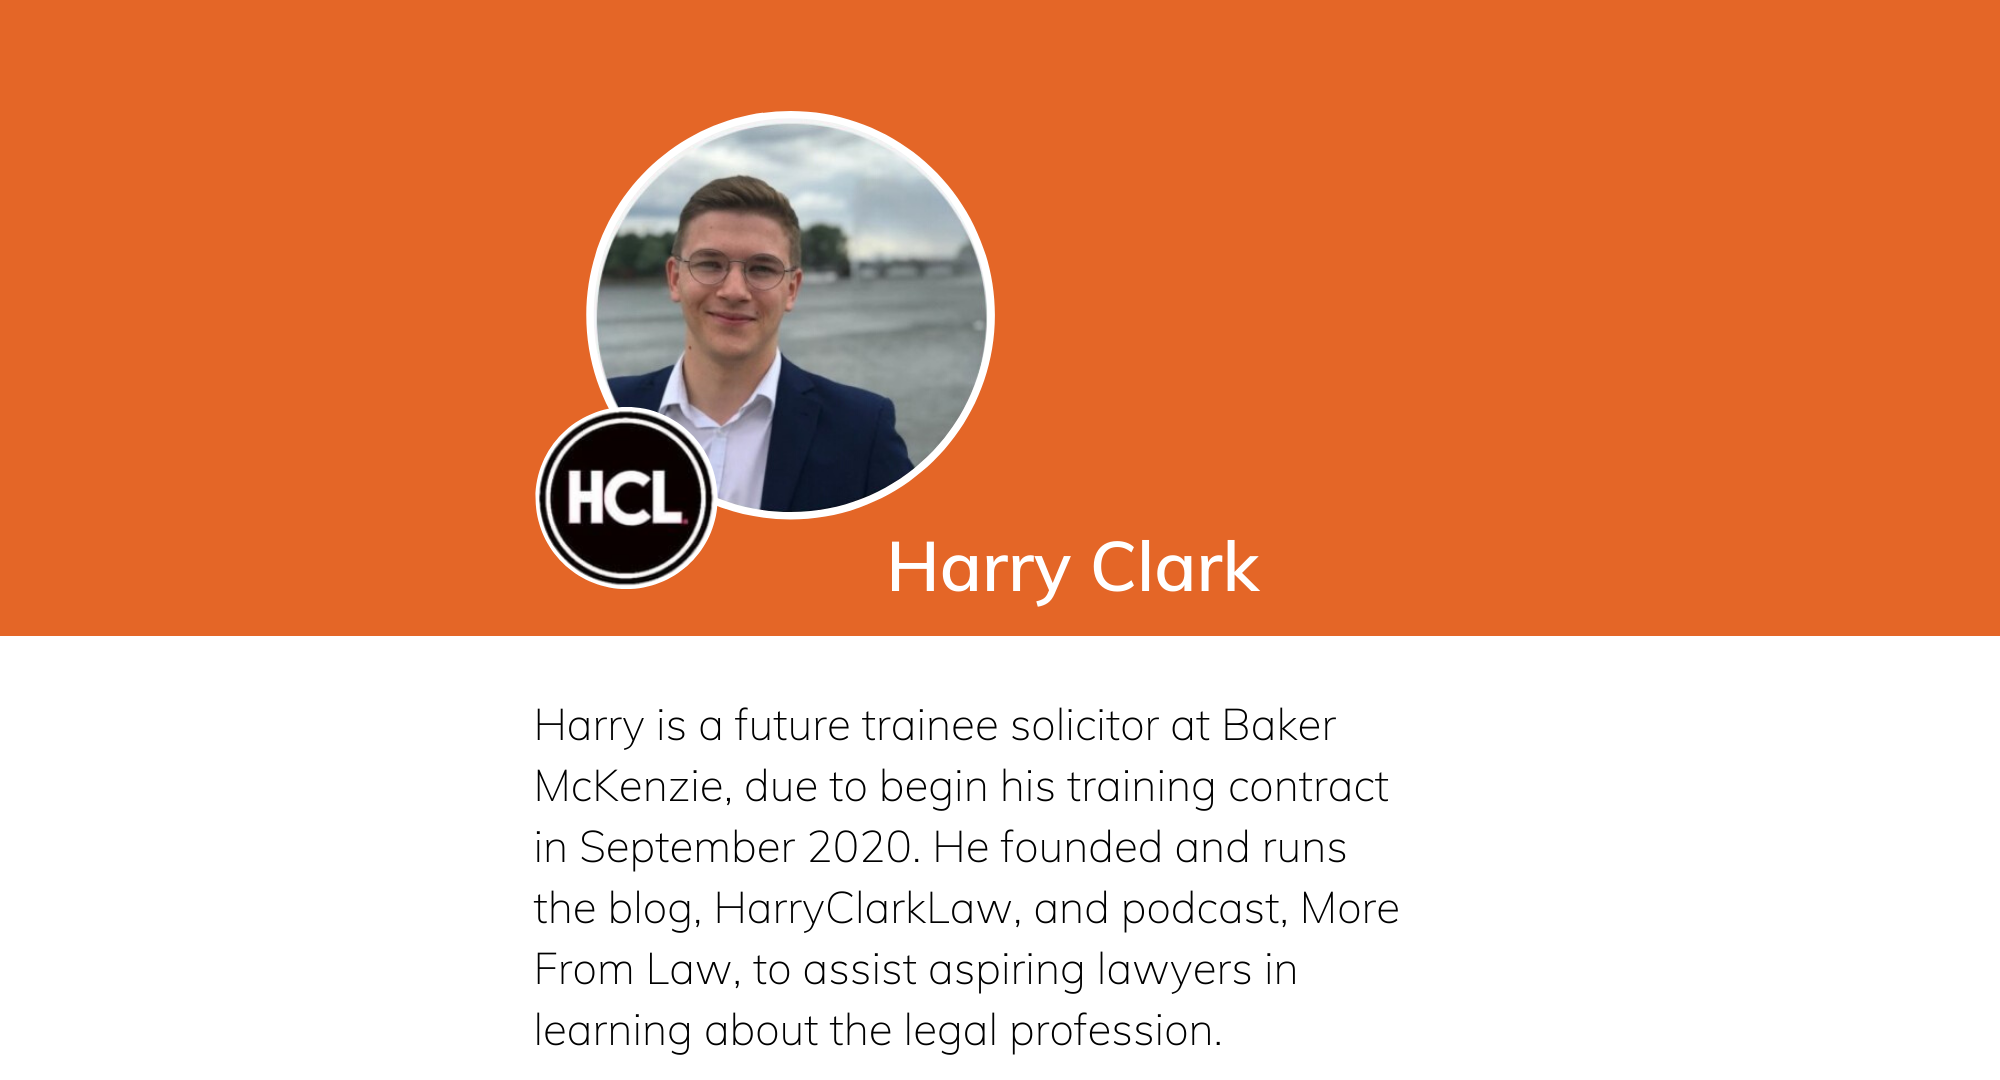 Demystifying the adoption of LegalTech with Harry Clark